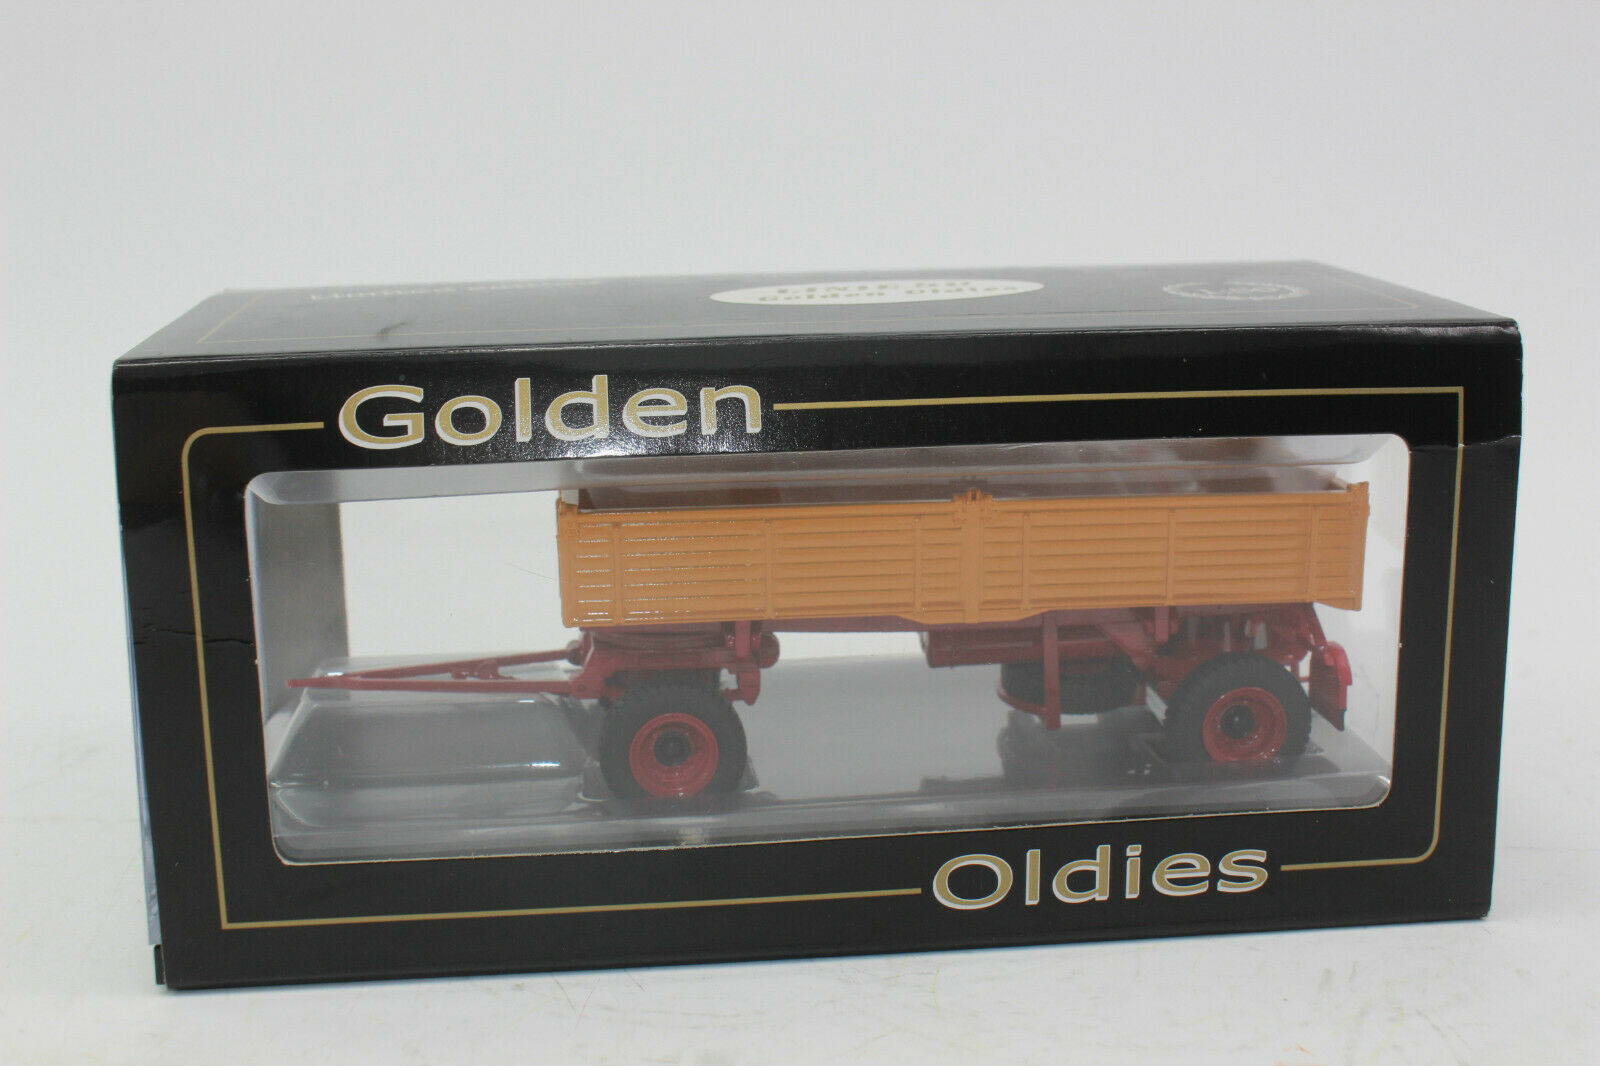 Gmts 2704 oroen Oldies 2ejes Remolque Volcable Naranja Individual Tire 1